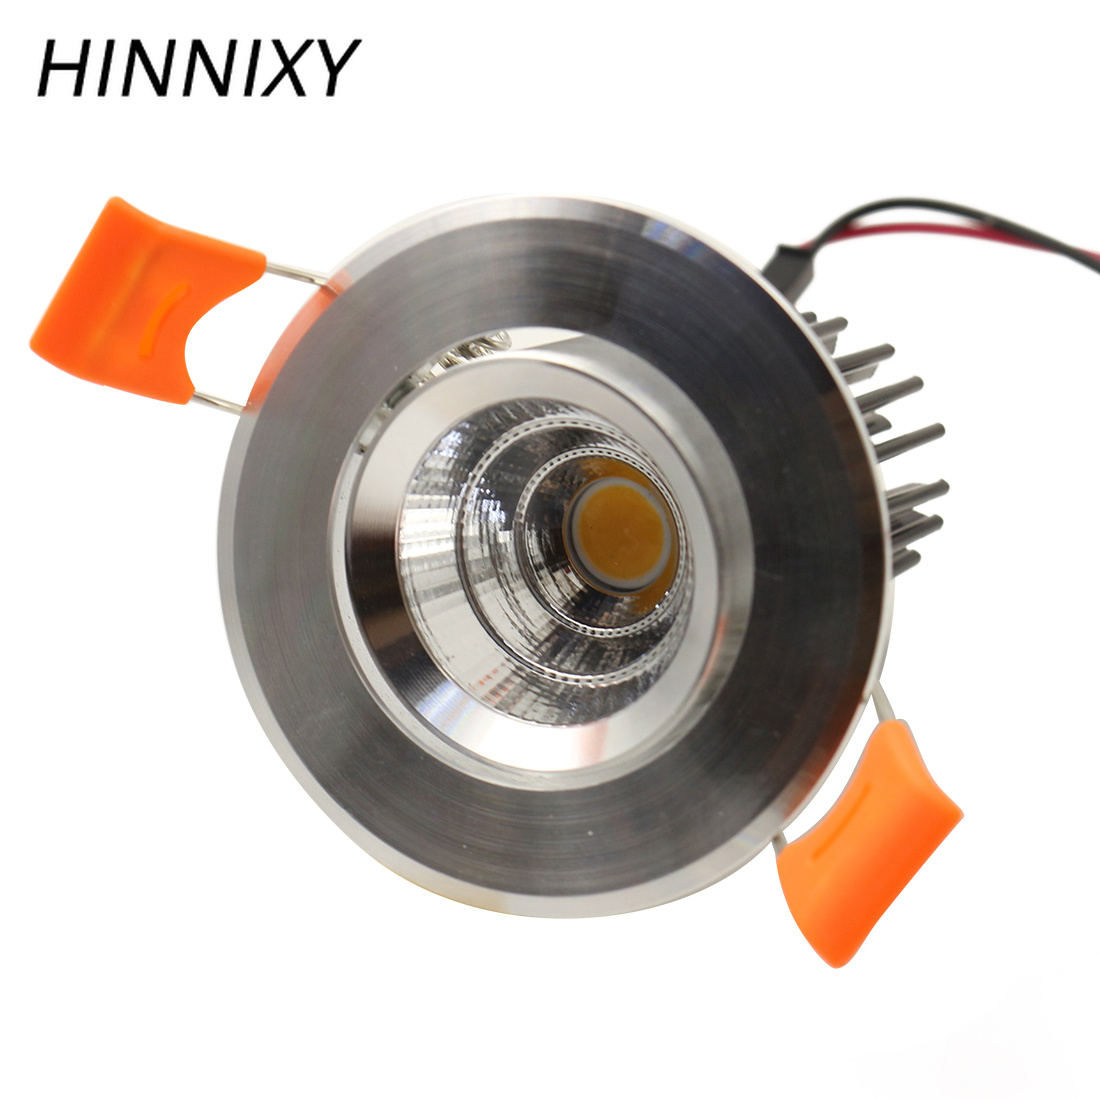 the latest aefa7 eaddc US $6.02 43% OFF|Hinnixy Super Bright Silvery LED Downlight 5W 90V 260V  55mm Cut Hole Recessed Ceiling luminaire Kitchen Spot Lighting fixtures-in  ...